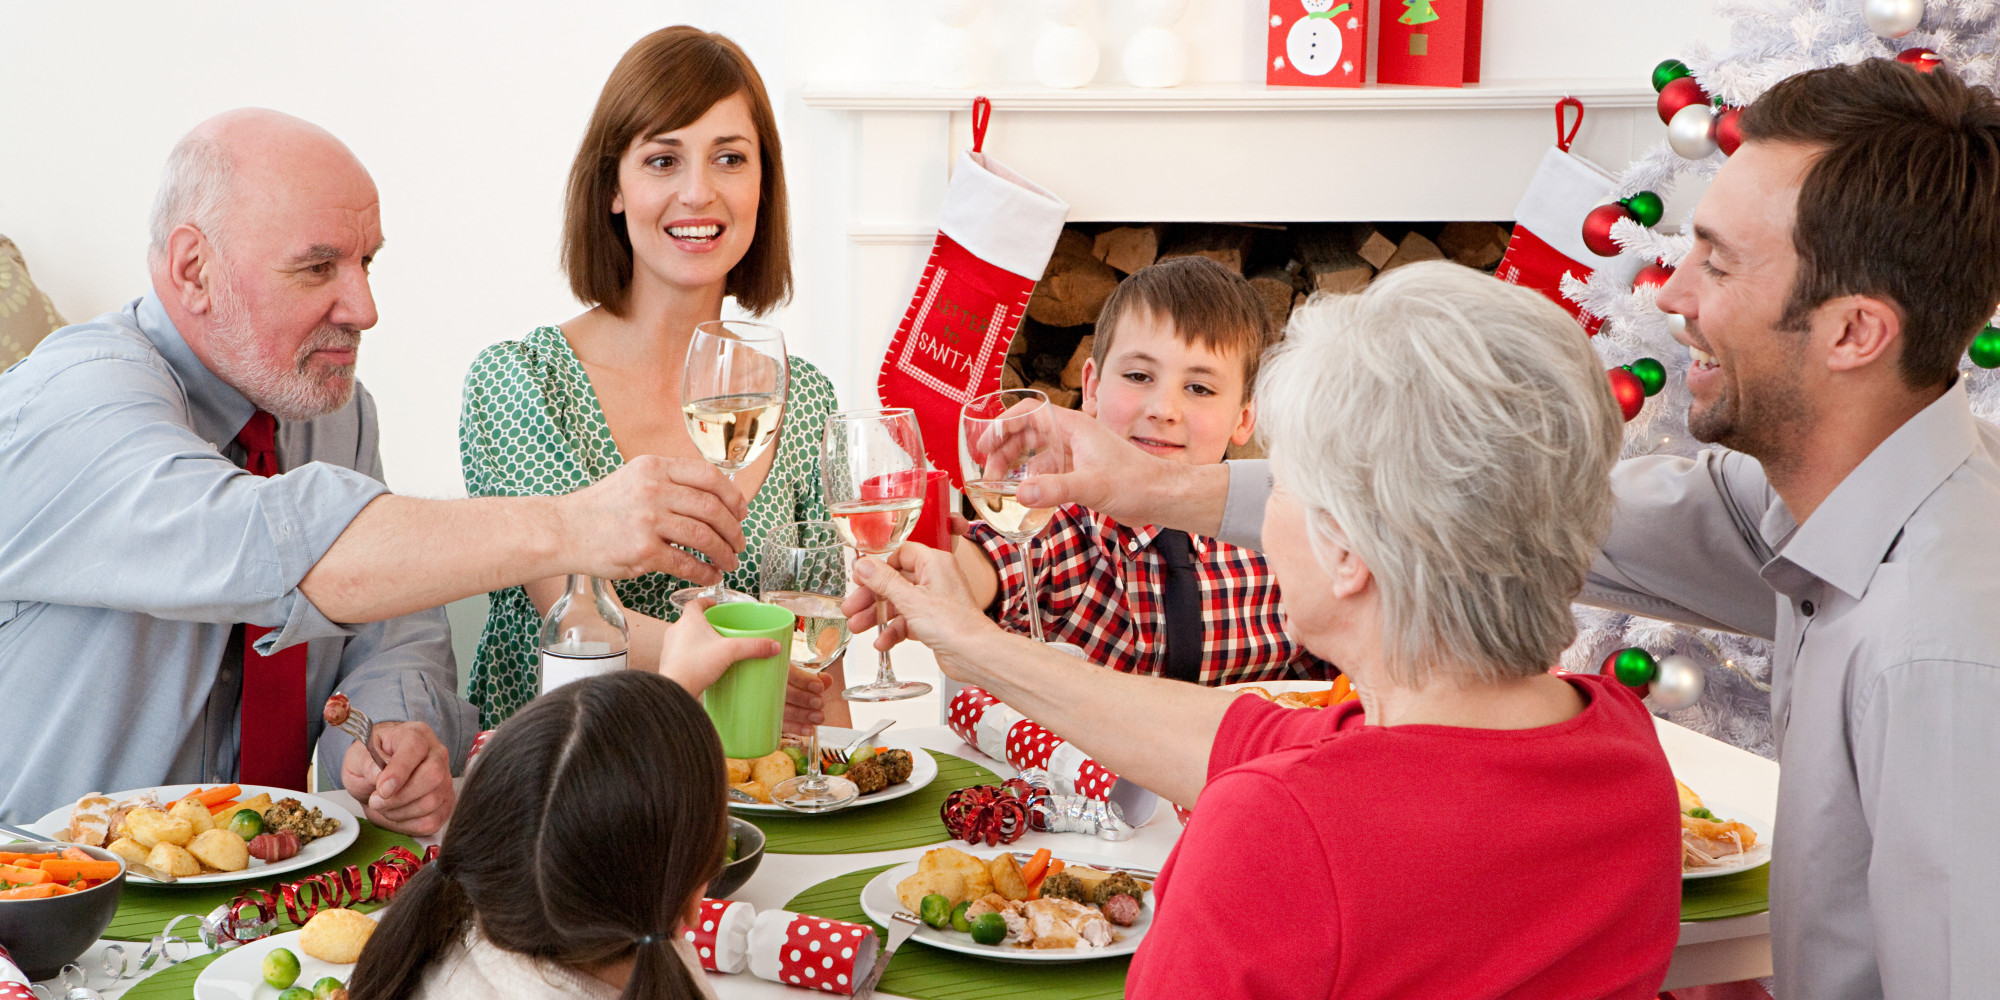 Family Christmas Photos Why Do The In Laws Make Christmas So Stressful Huffpost Uk